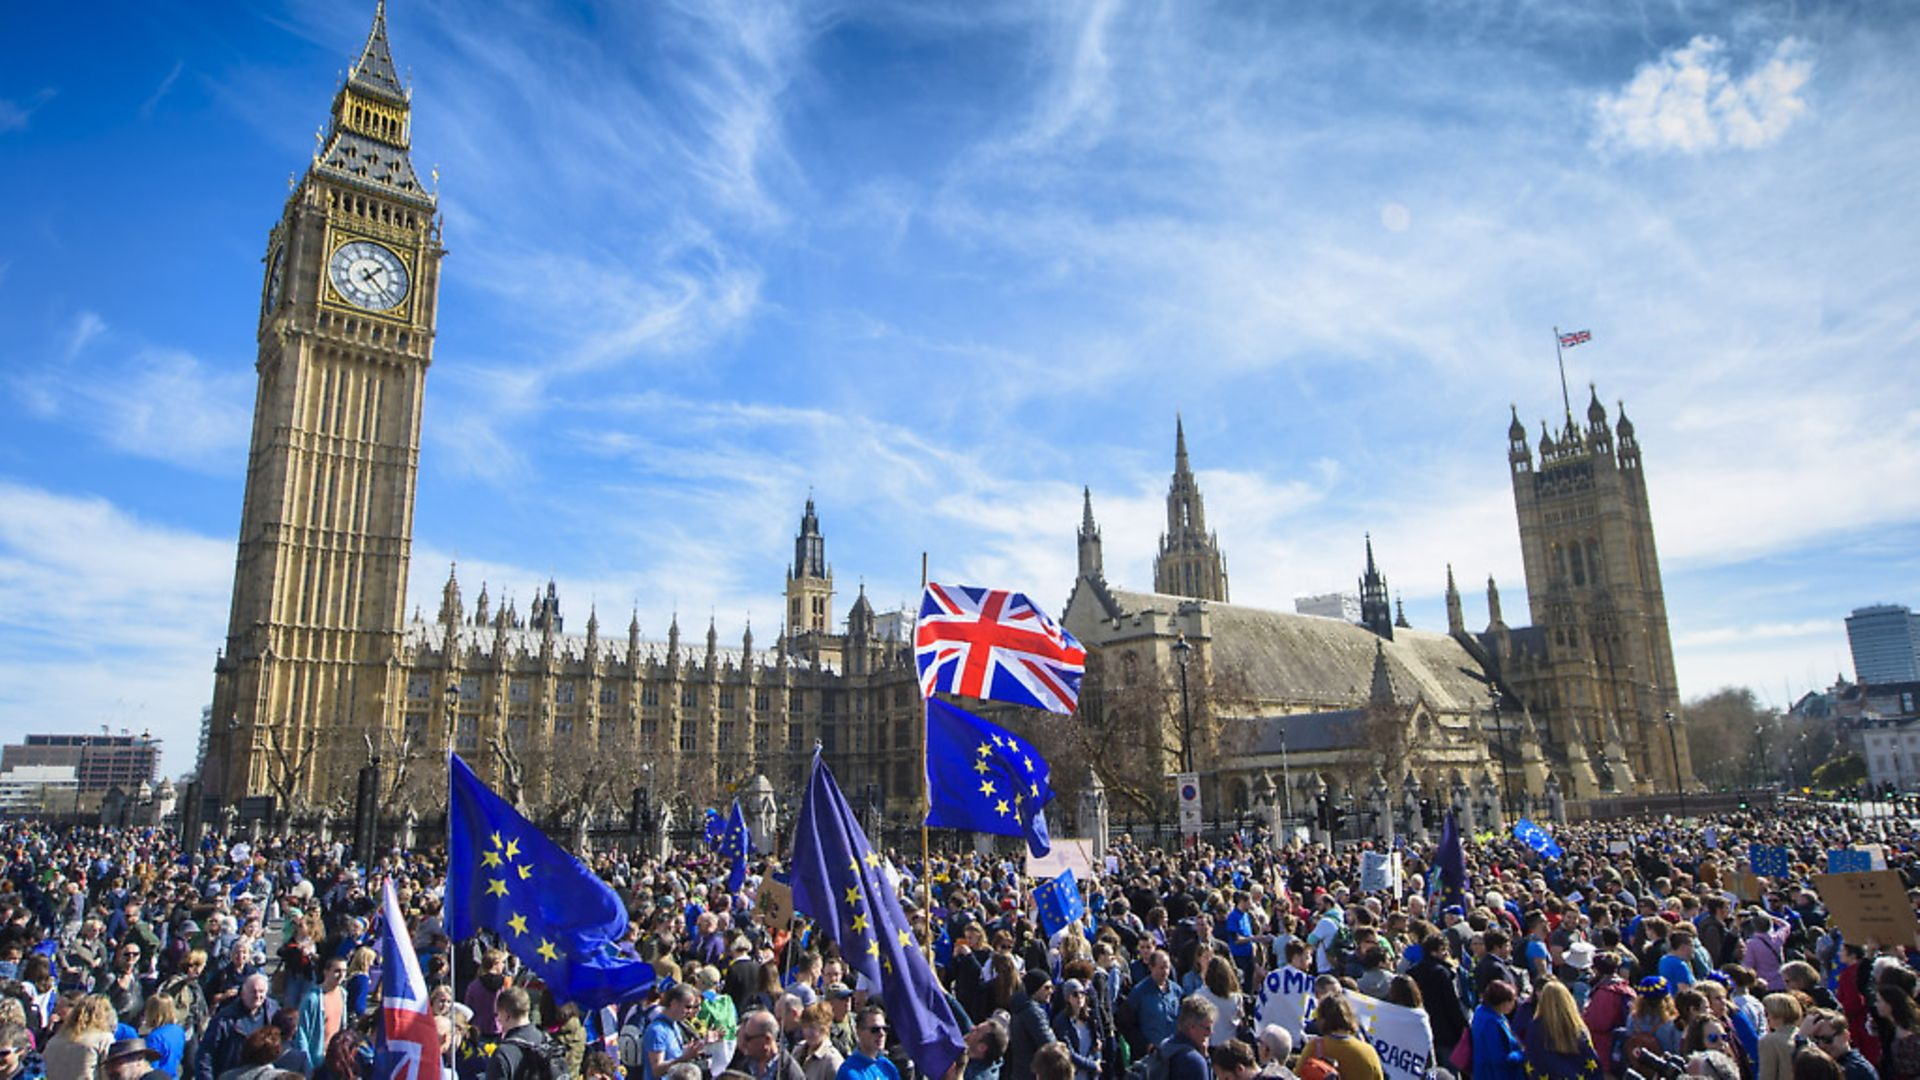 Pro-EU campaigners at the March for Europe rally against Brexit in Parliament Square, central London. Photo: Matt Crossick/ EMPICS Entertainment - Credit: Empics Entertainment